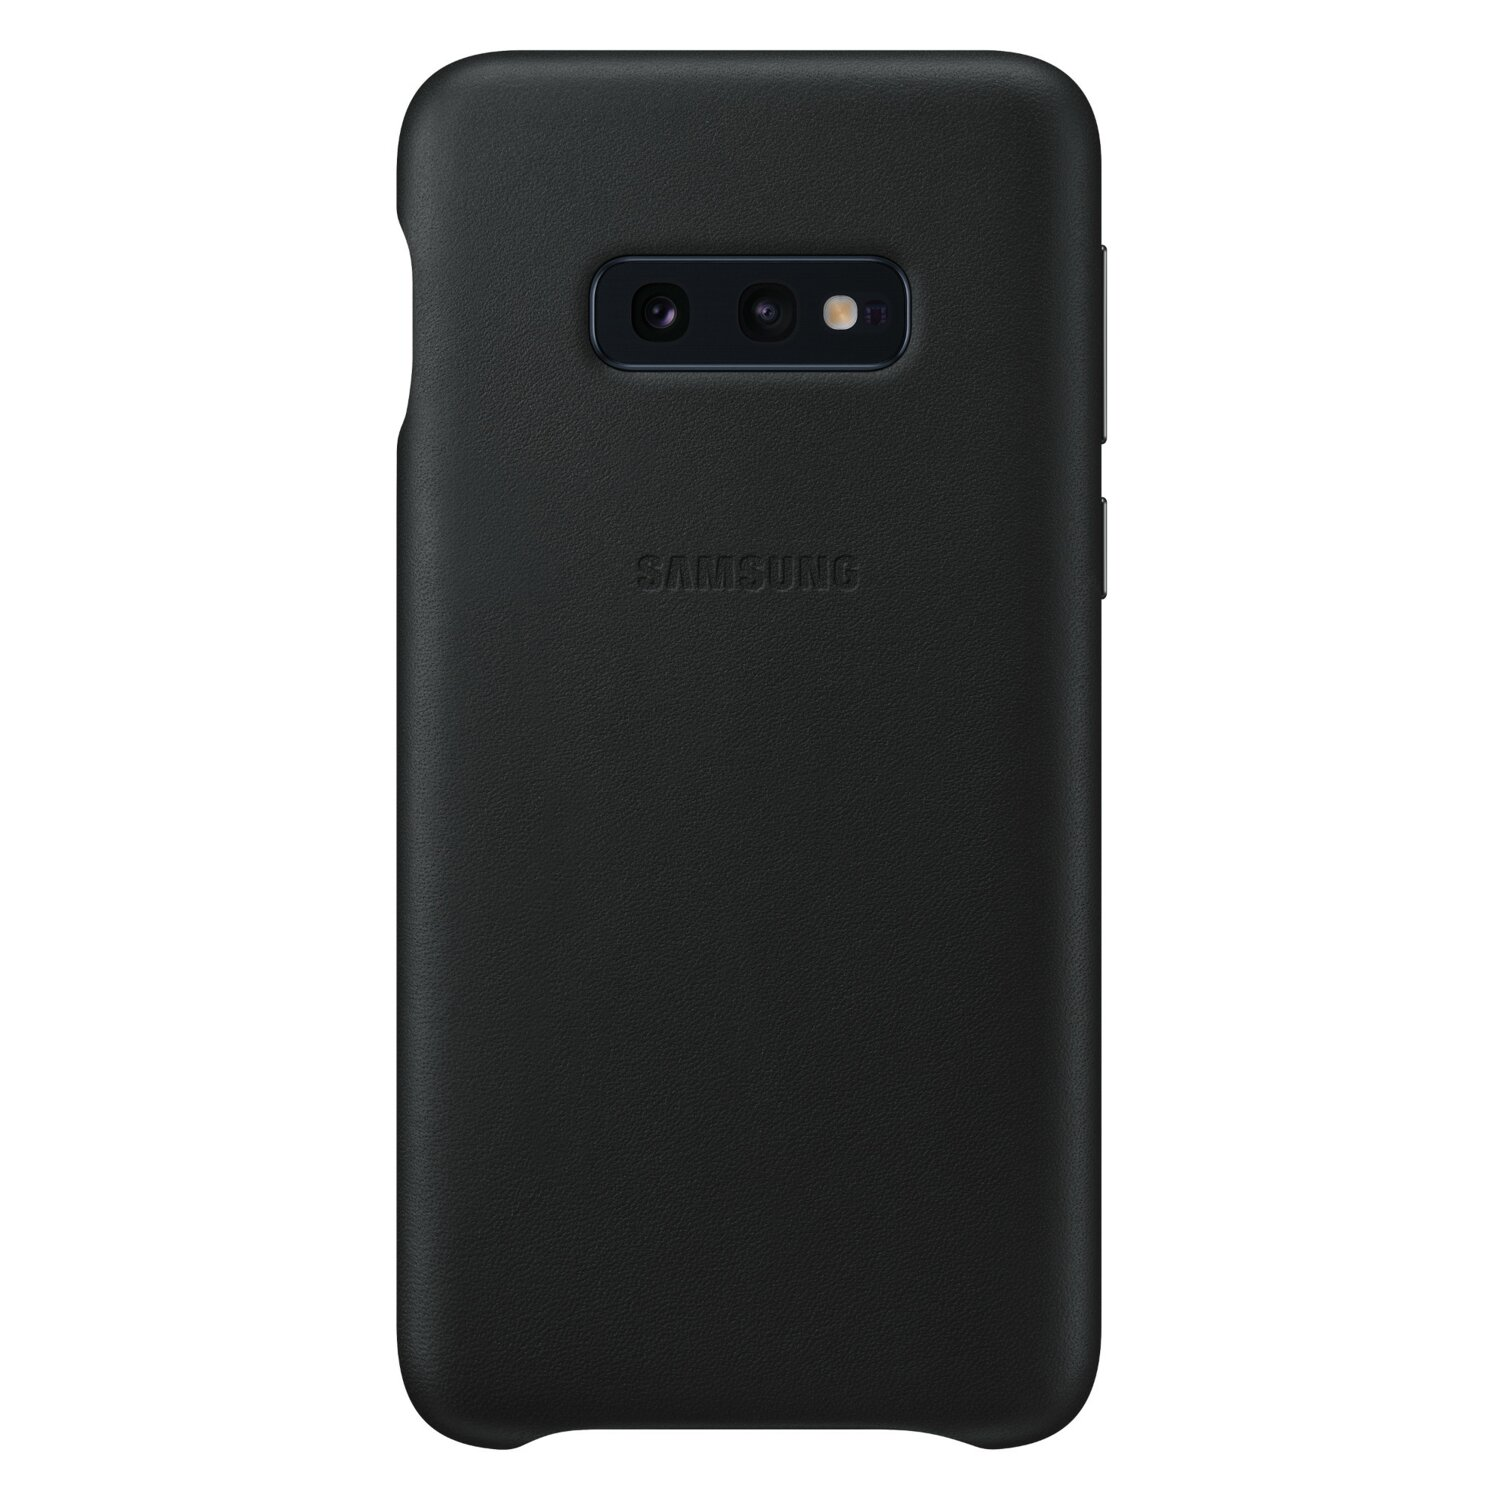 Etui SAMSUNG Leather Cover do Samsung Galaxy S10e Czarny EF-VG970LBEGWW